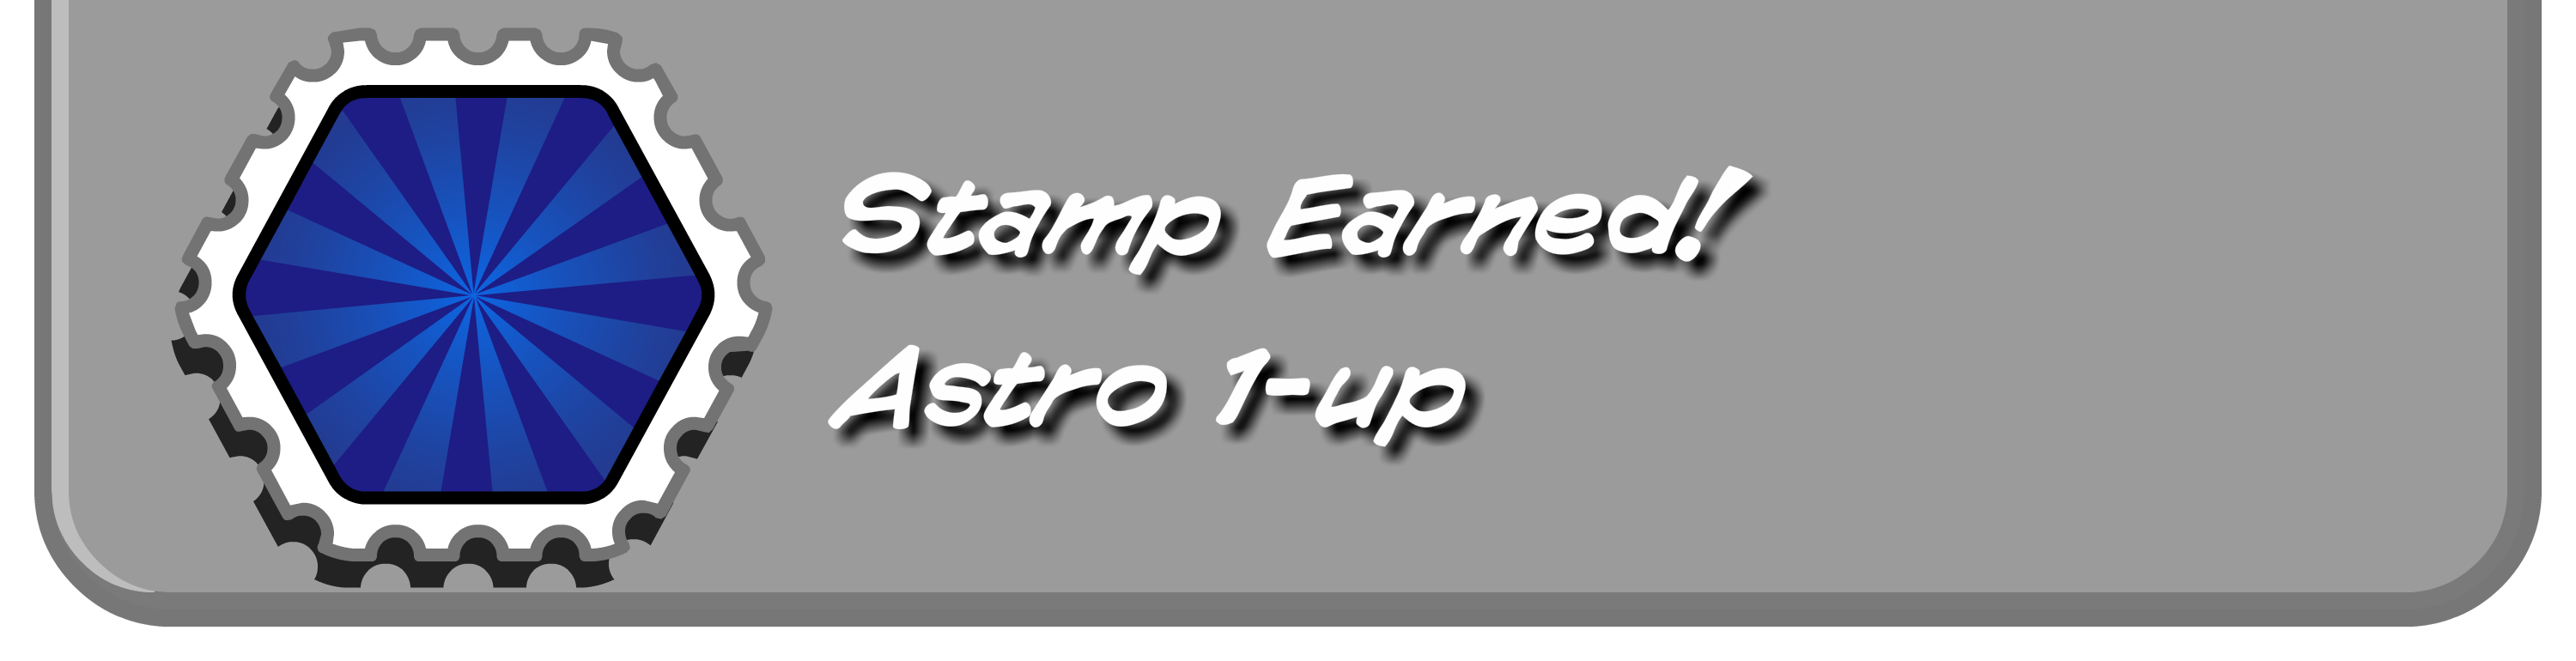 Astro 1-up Stamp